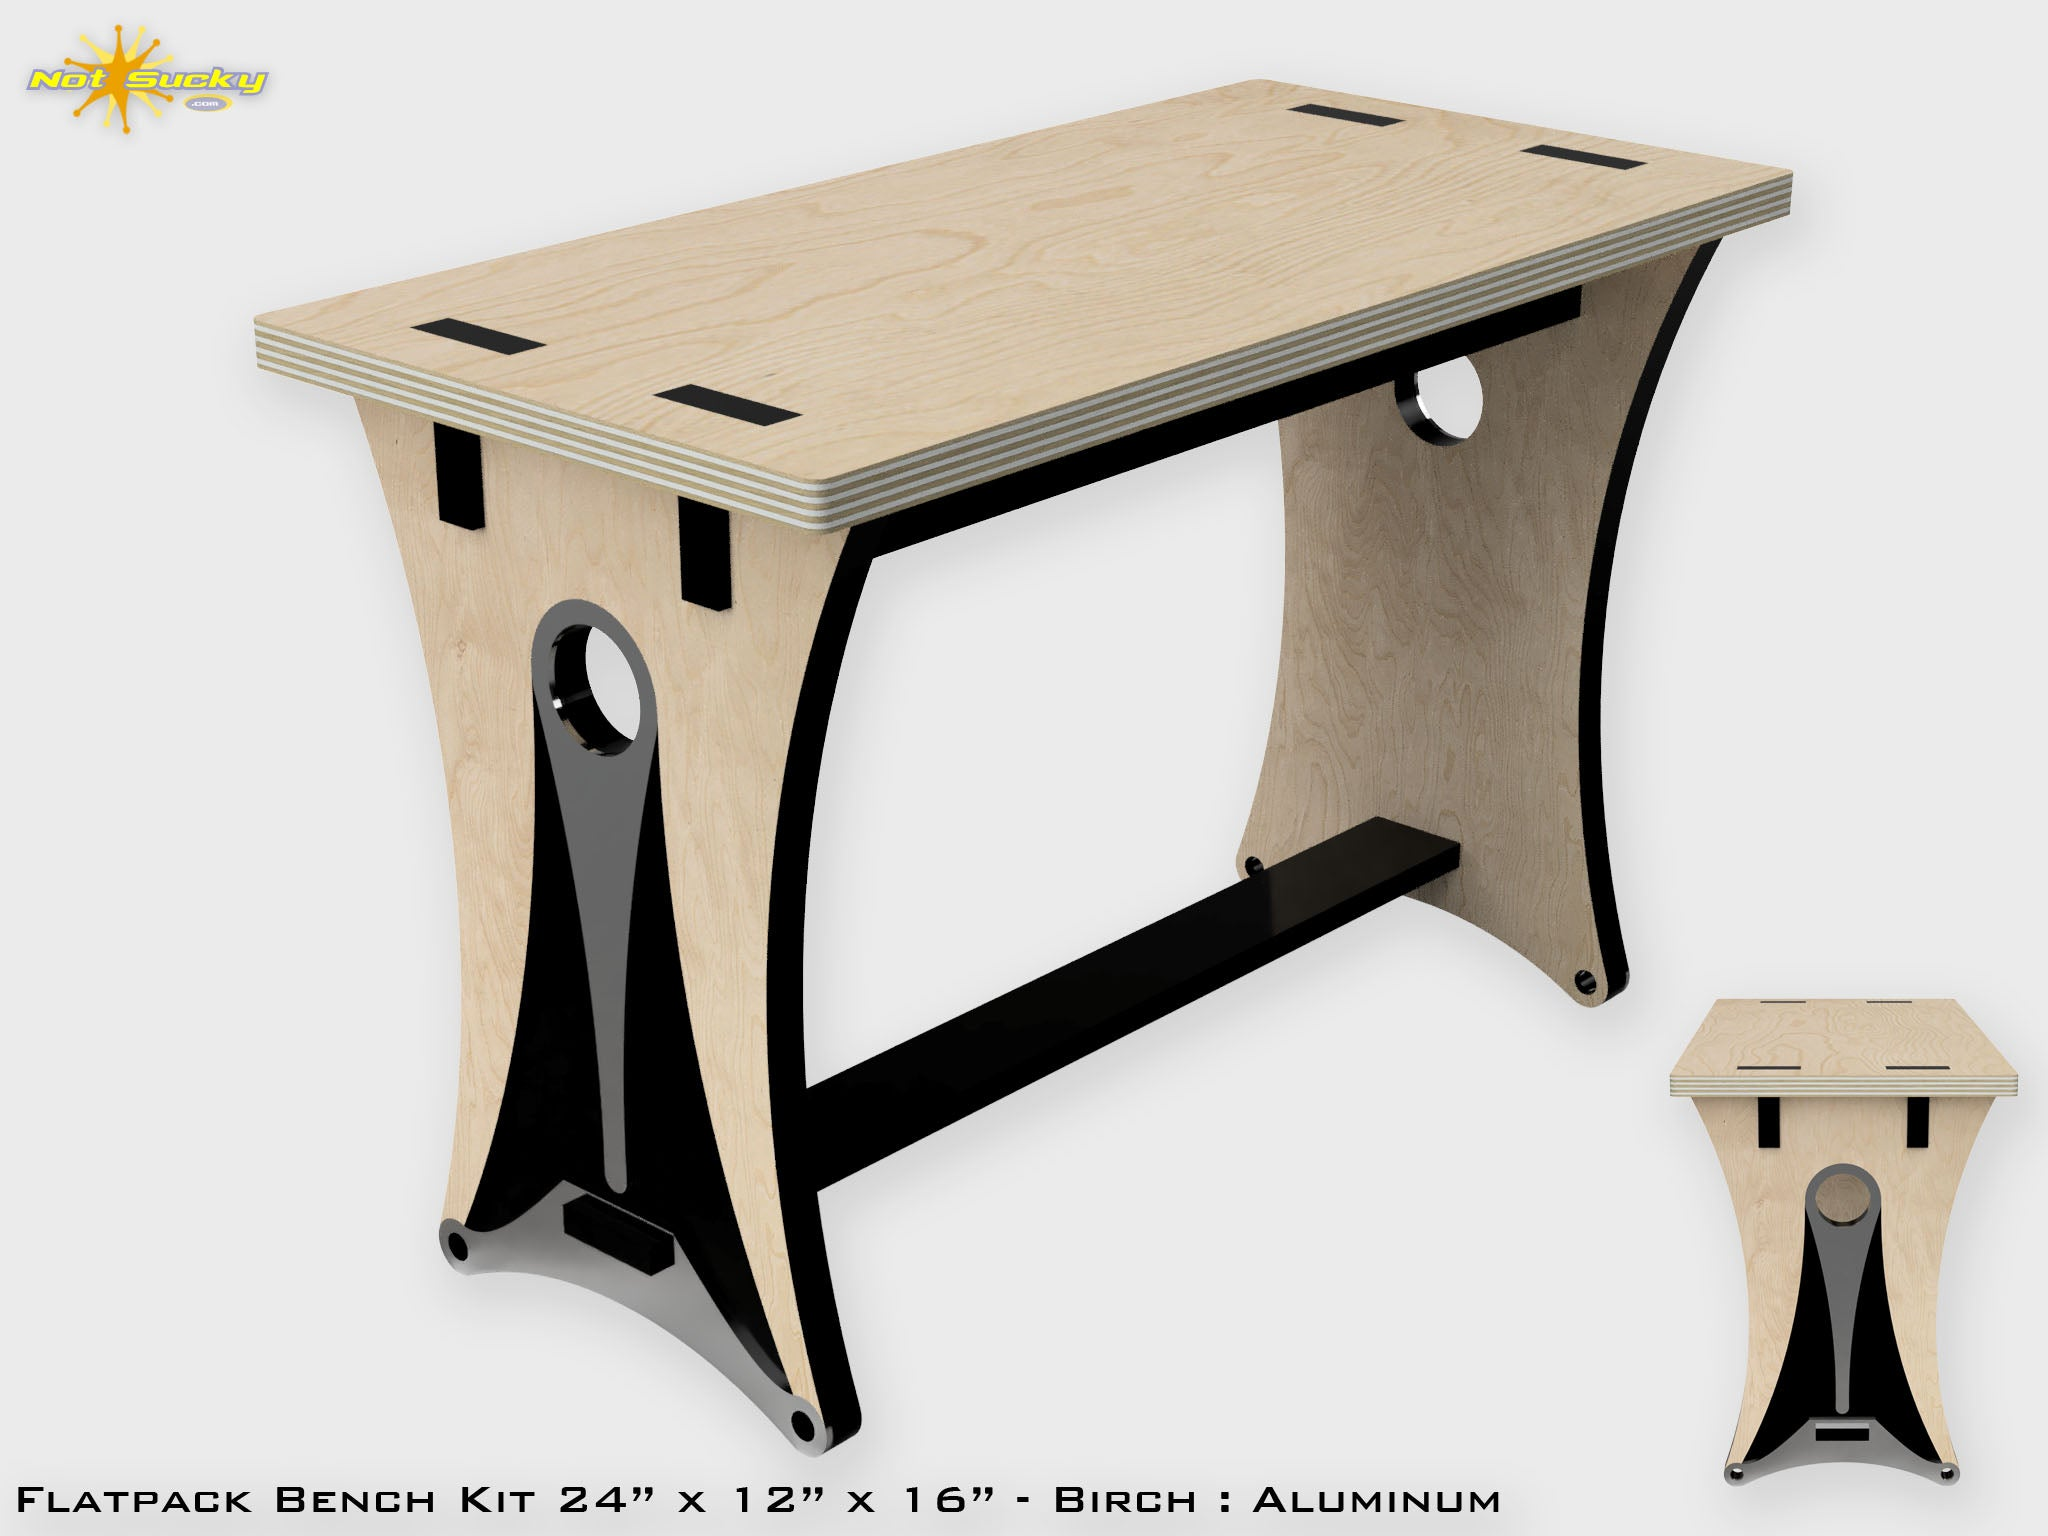 SHOP FLAT PACK BENCH COLLECTION